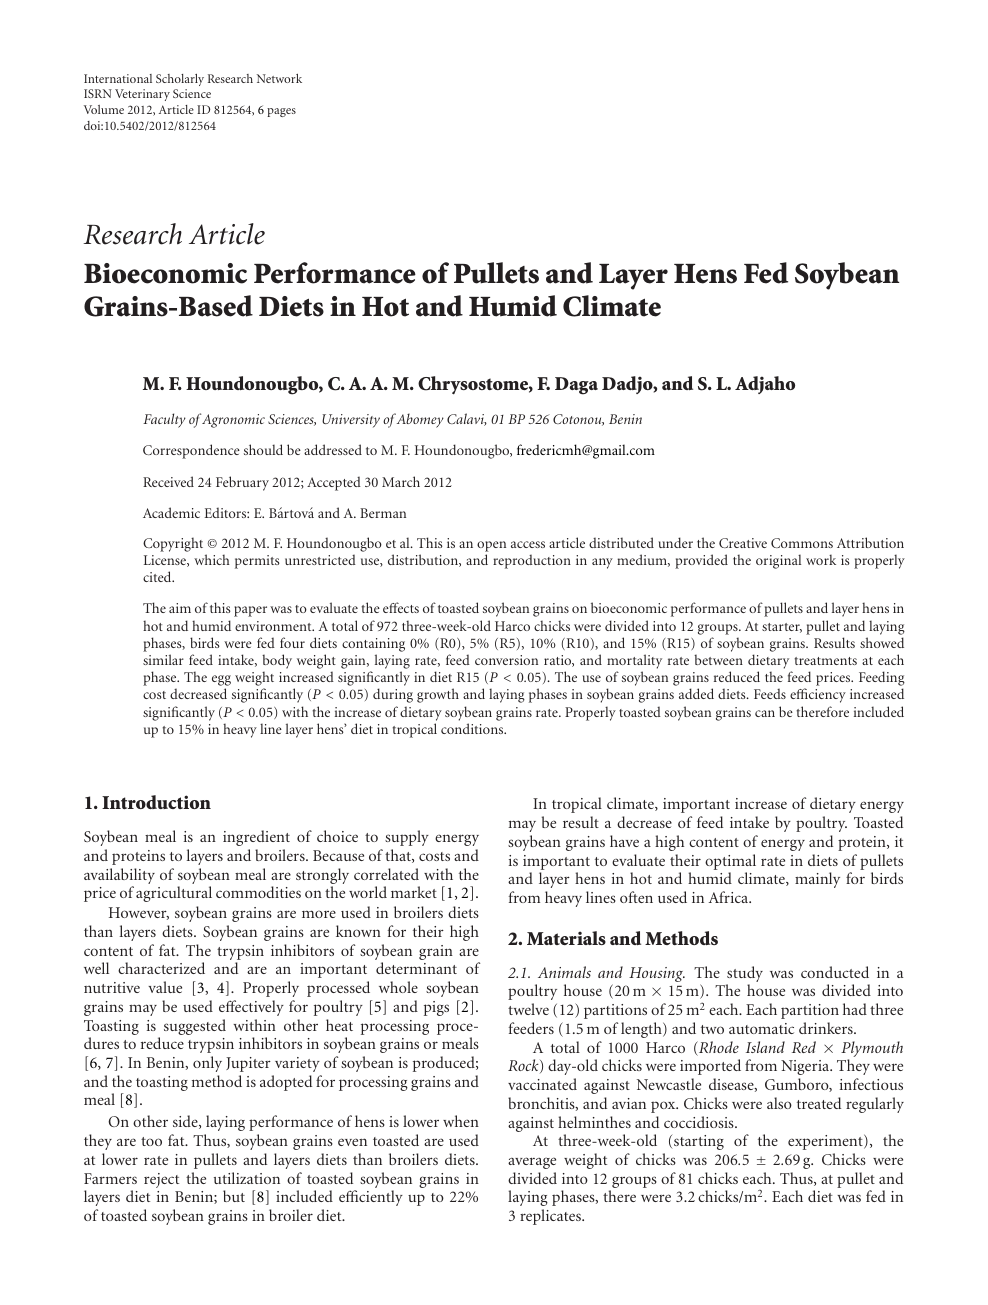 Bioeconomic Performance Of Pullets And Layer Hens Fed